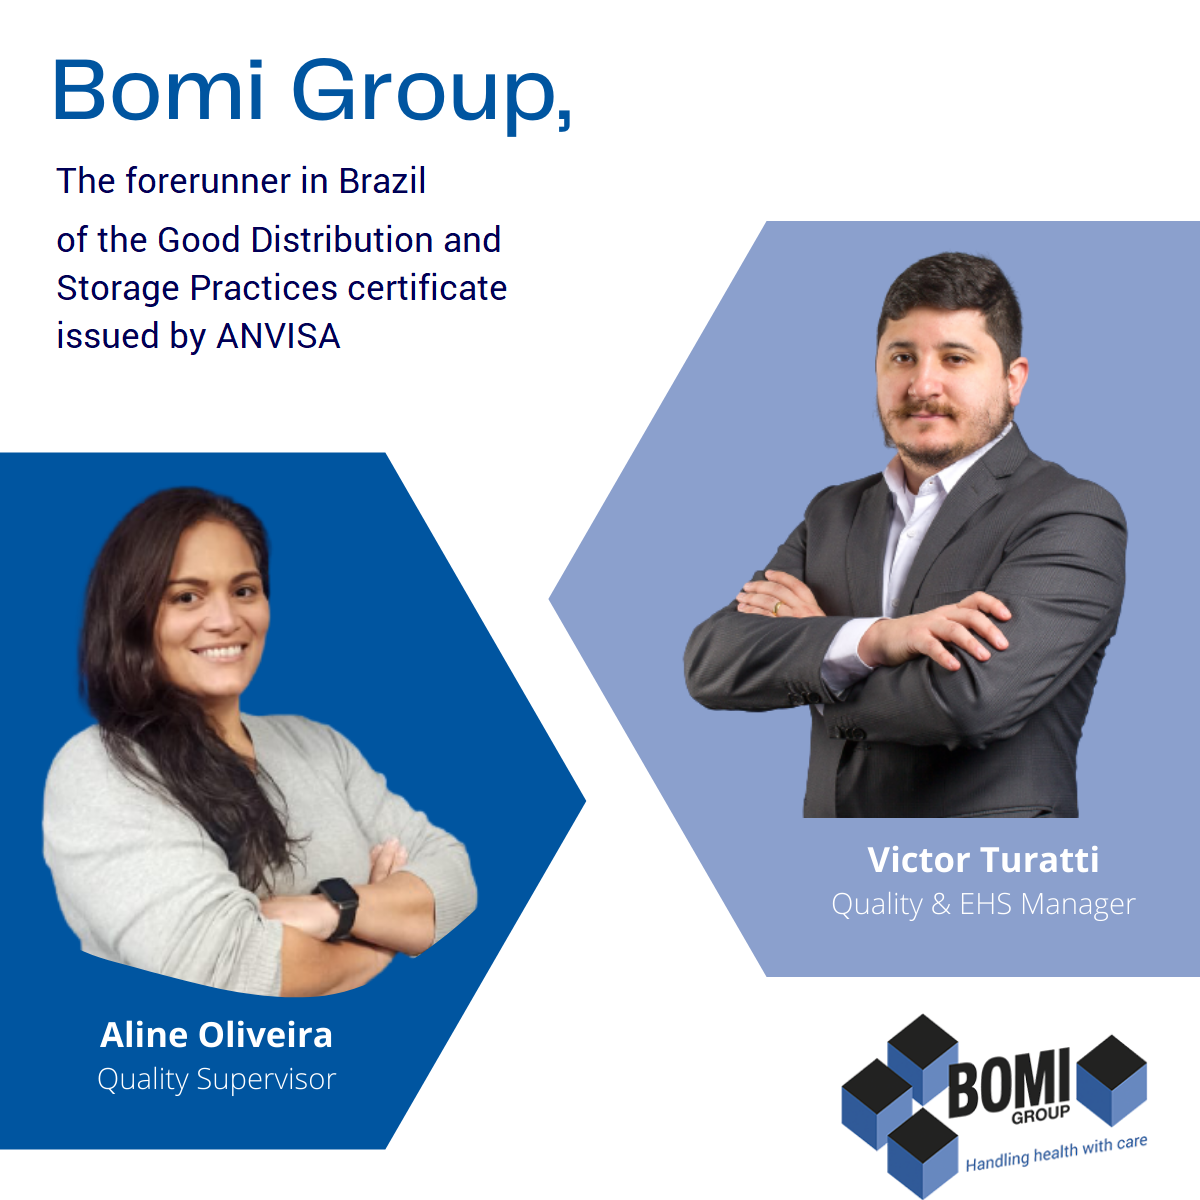 BOMI GROUP In Brazil Is Honored To Maintain The Certificate Of Good Distribution And Storage Practices (CBPDA) For Healthcare Products Since 2012